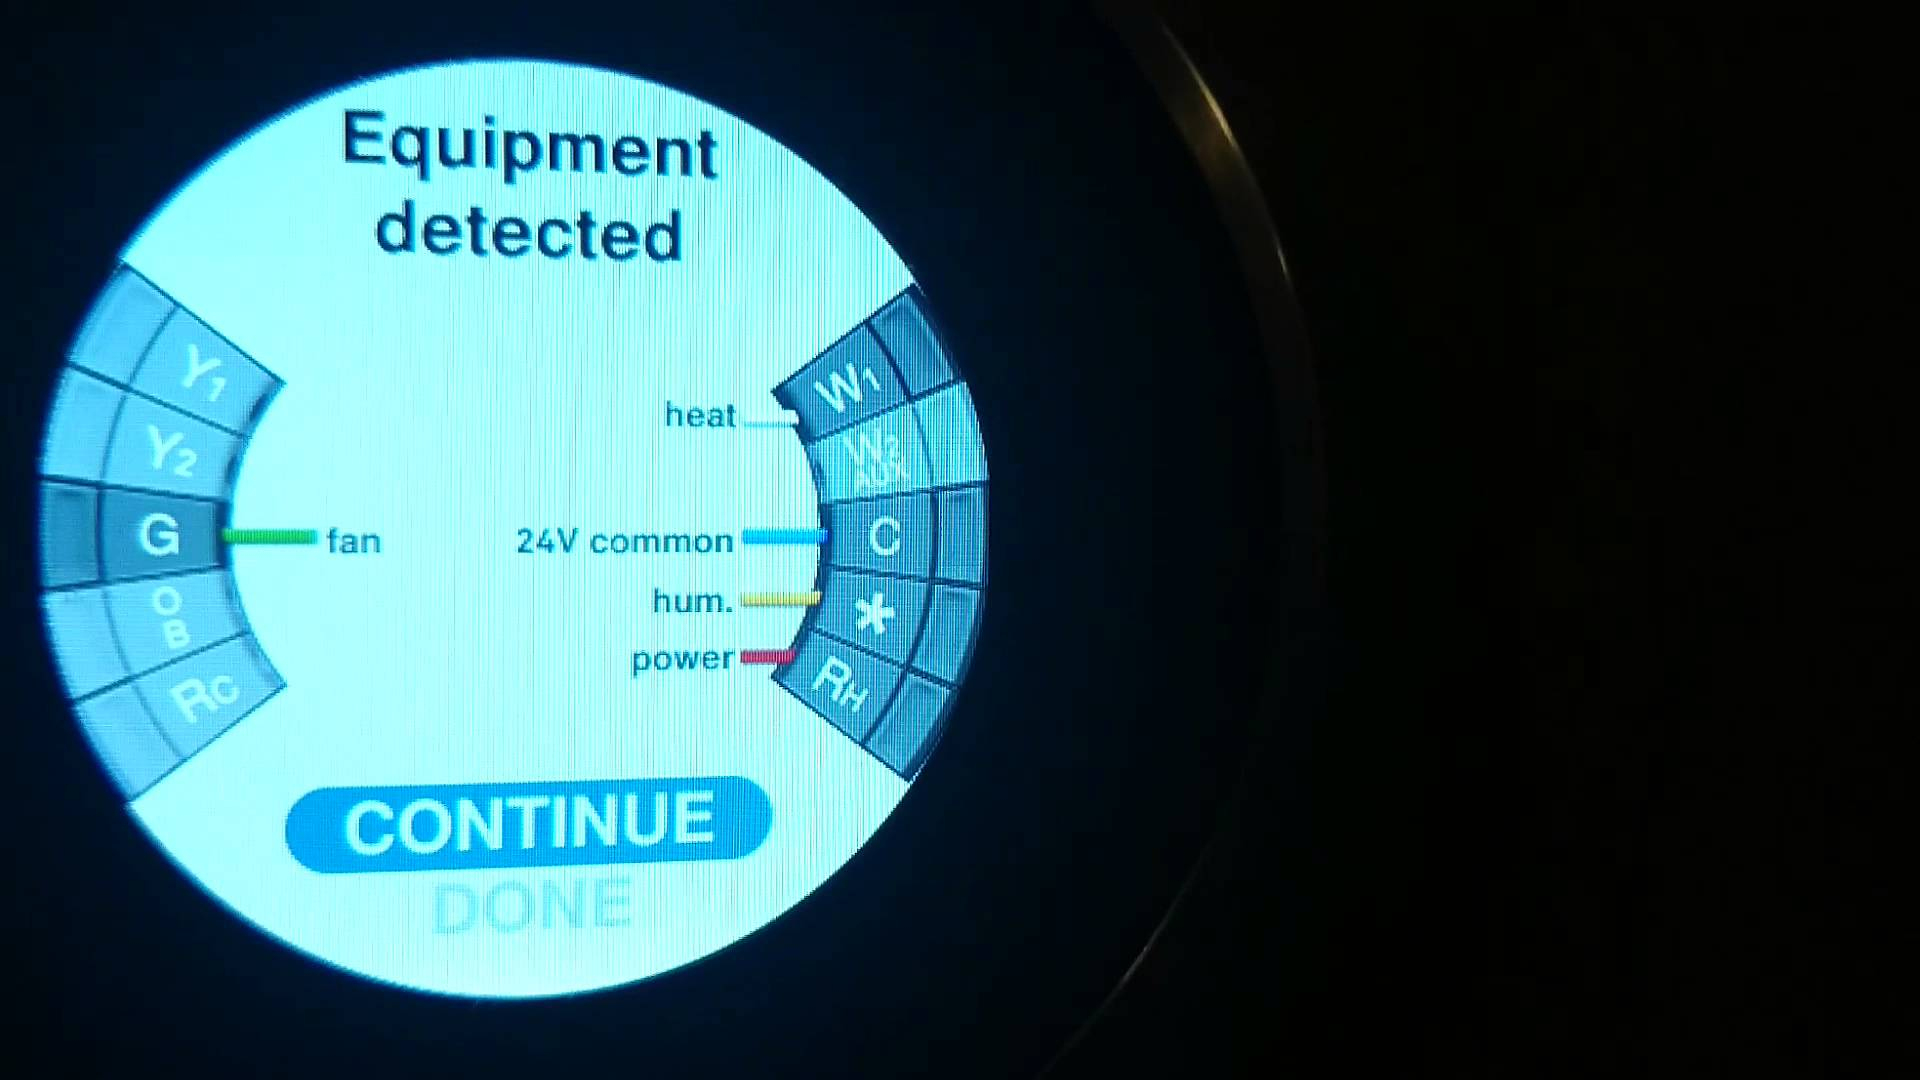 Wiring Diagram For Nest Thermostat With Humidifier - Wiring Diagrams - Nest Thermostat Humidifier Wiring Diagram